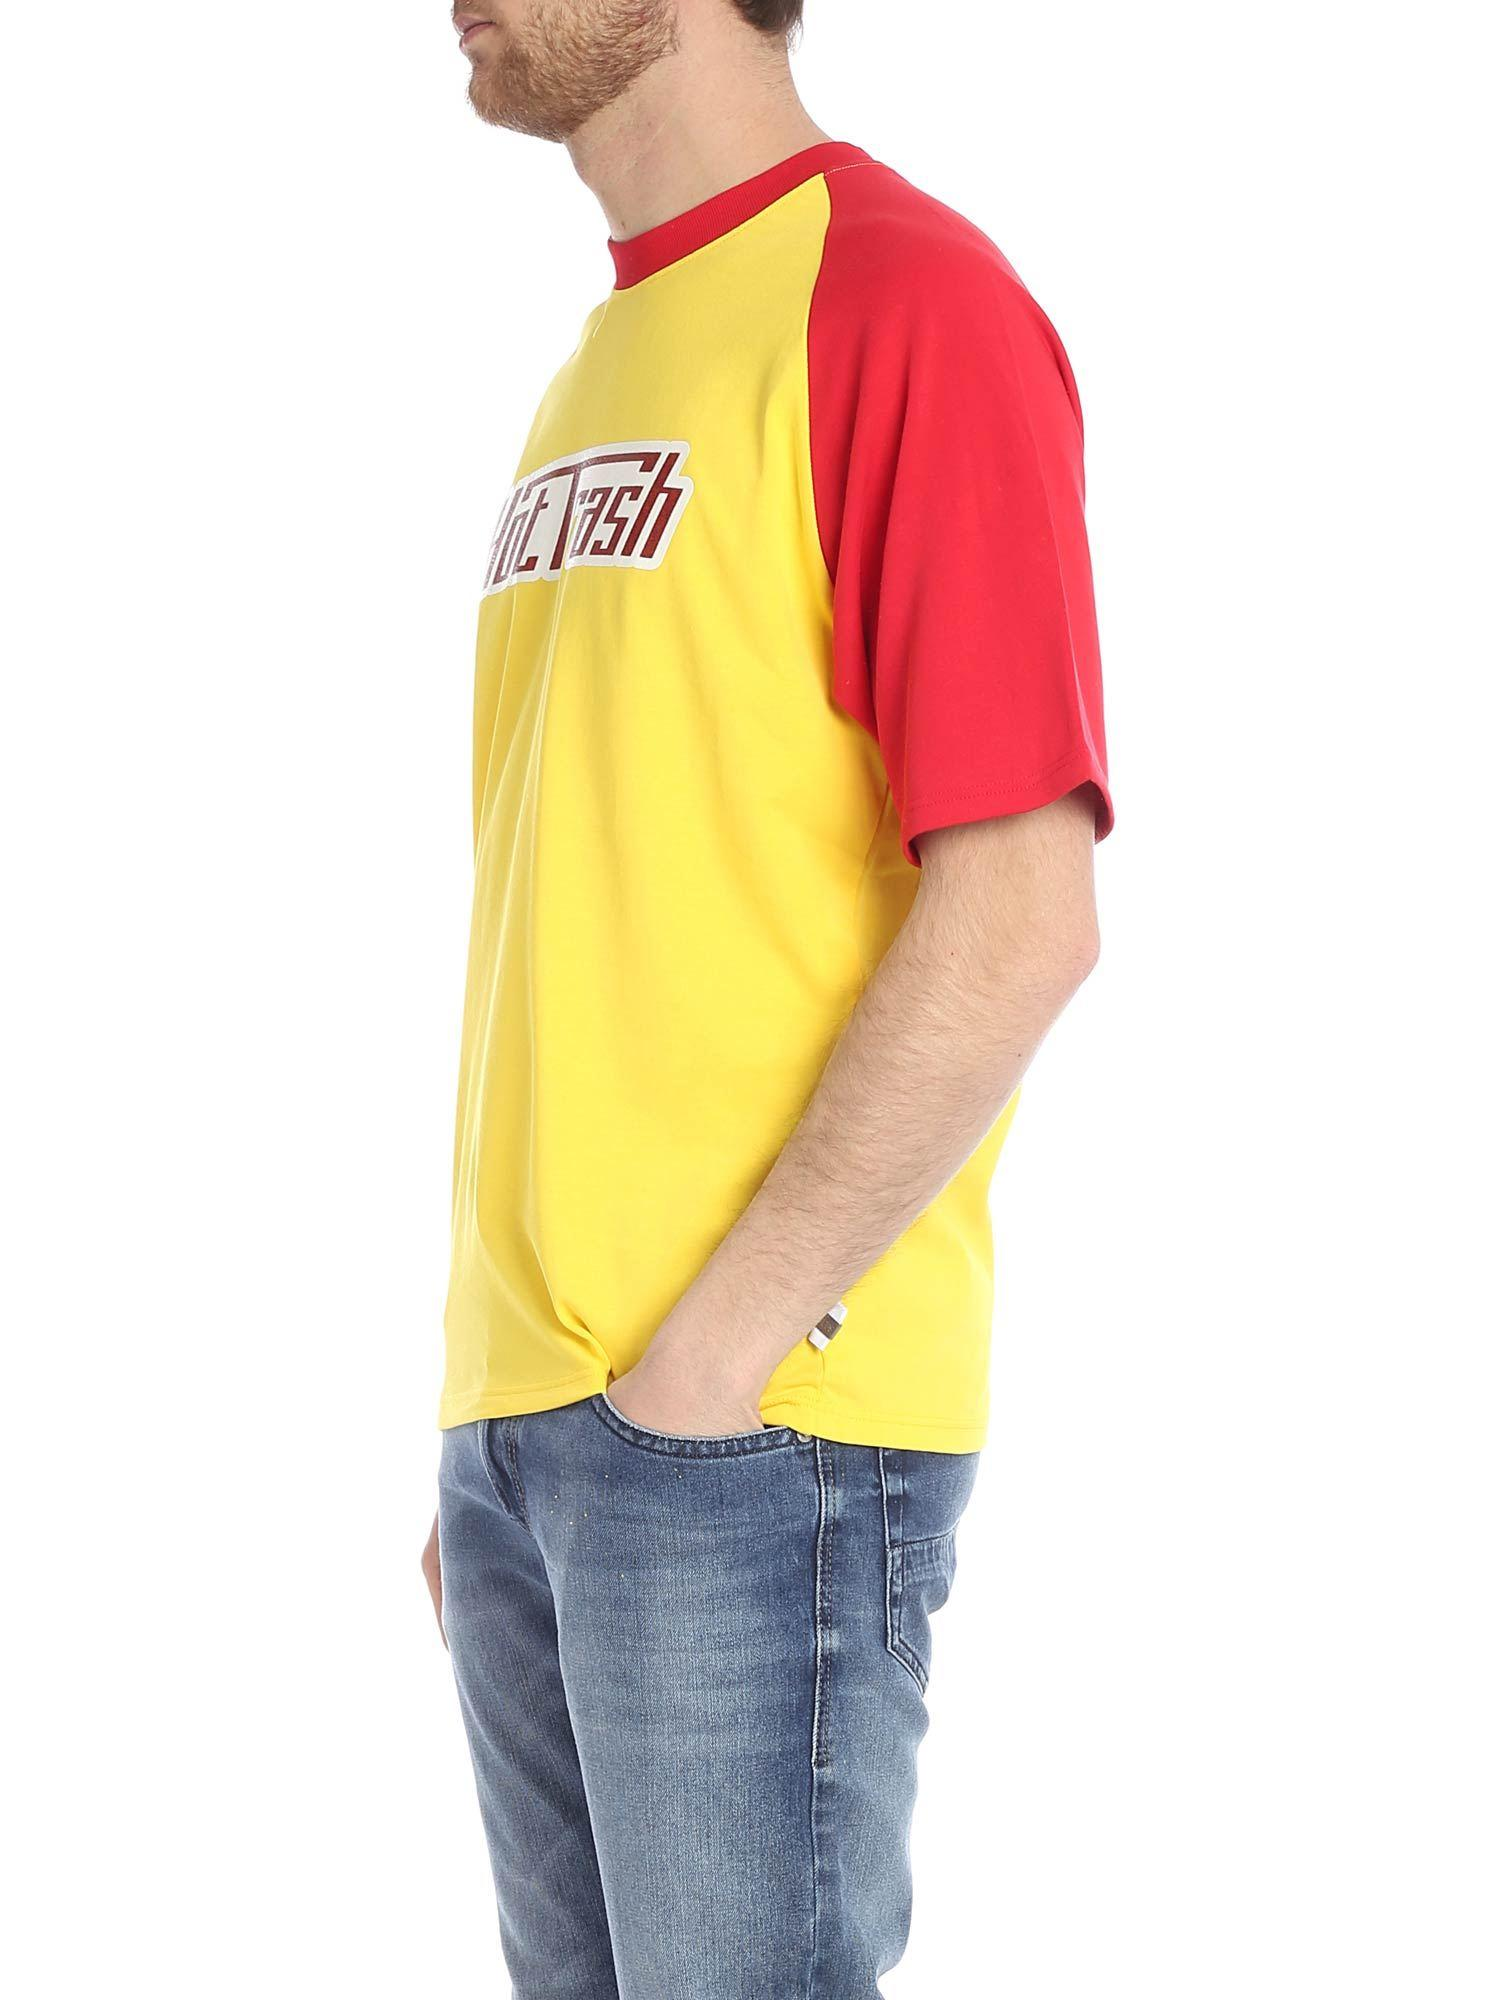 d596d4965bc2 Lyst - Gcds T-shirt In Yellow With Glitter Print in Yellow for Men